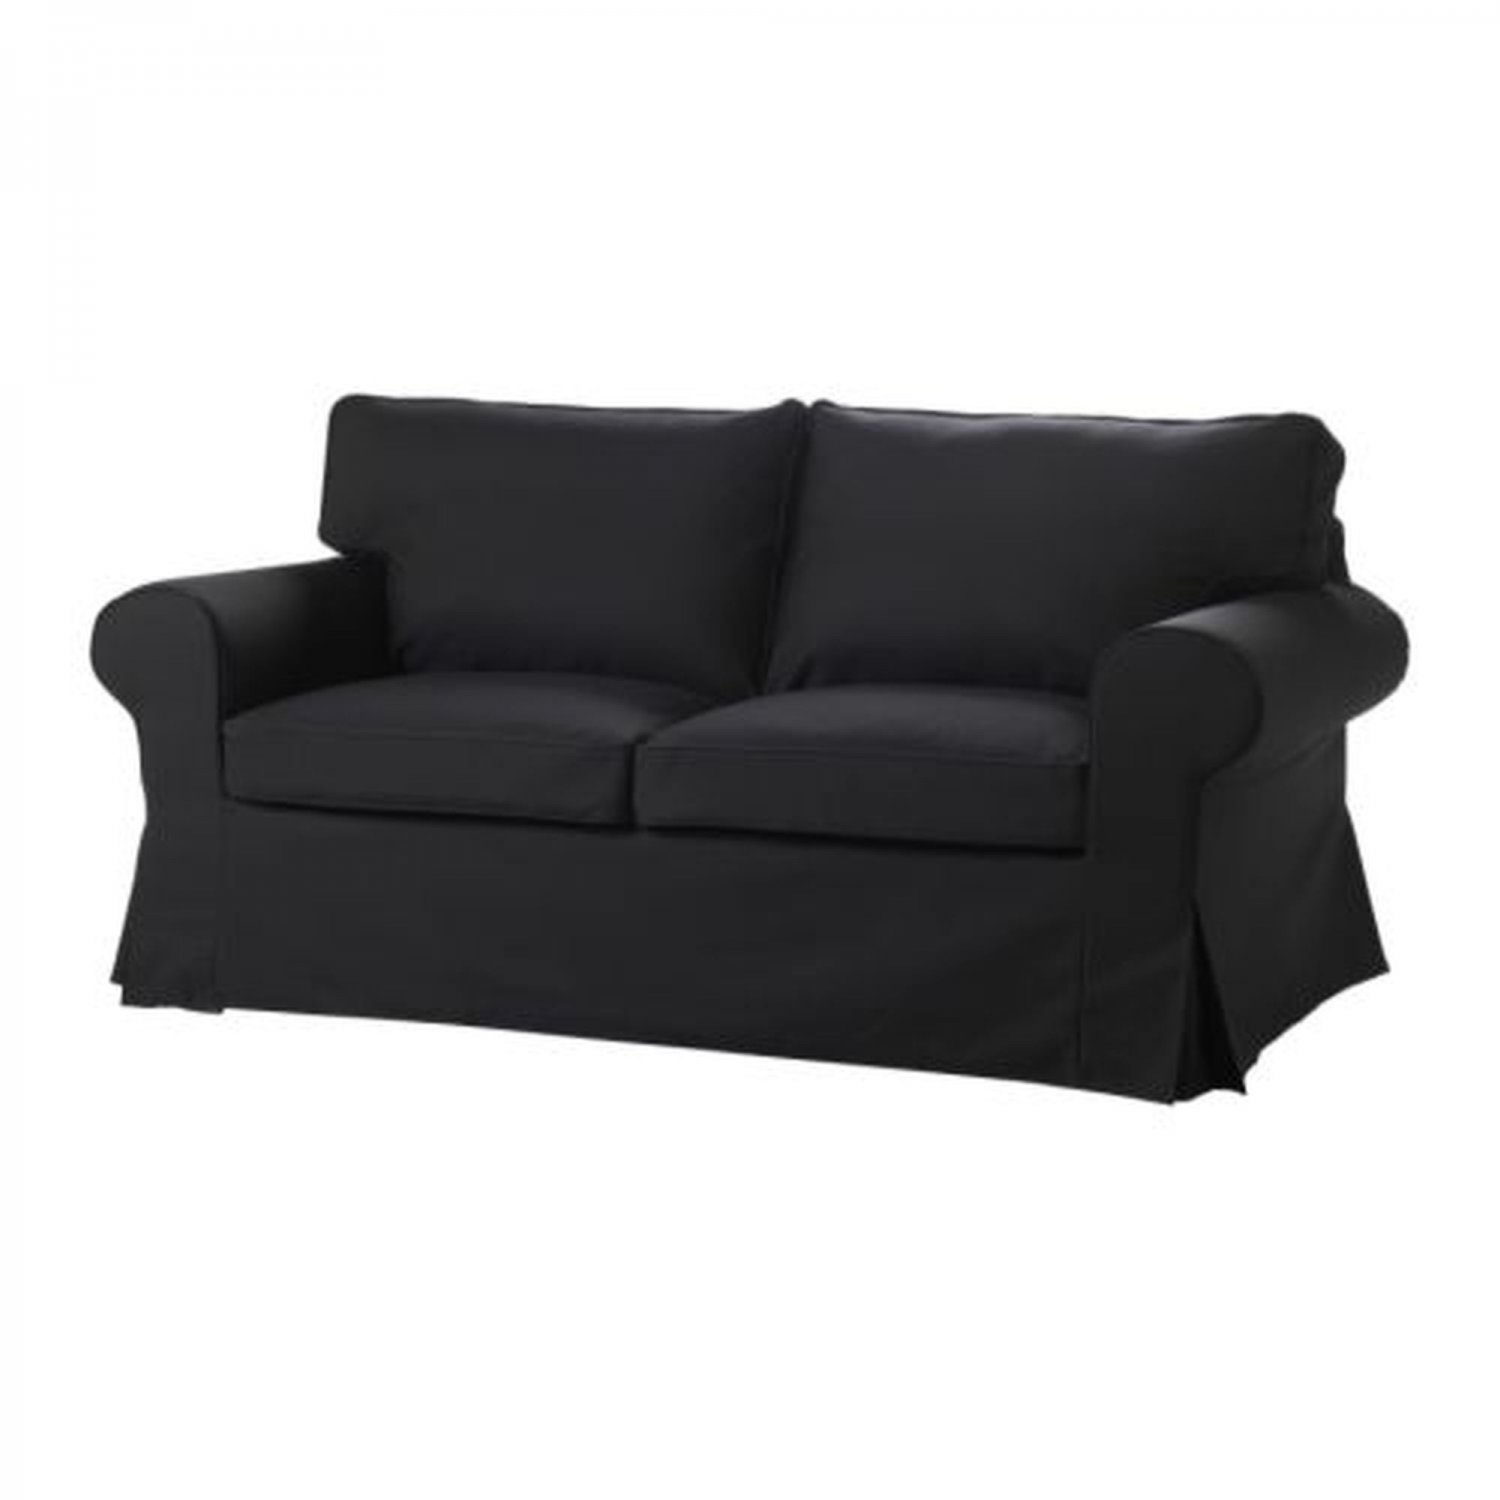 Ikea ektorp sofa bed slipcover sofabed cover idemo black bezug housse Cover for loveseat